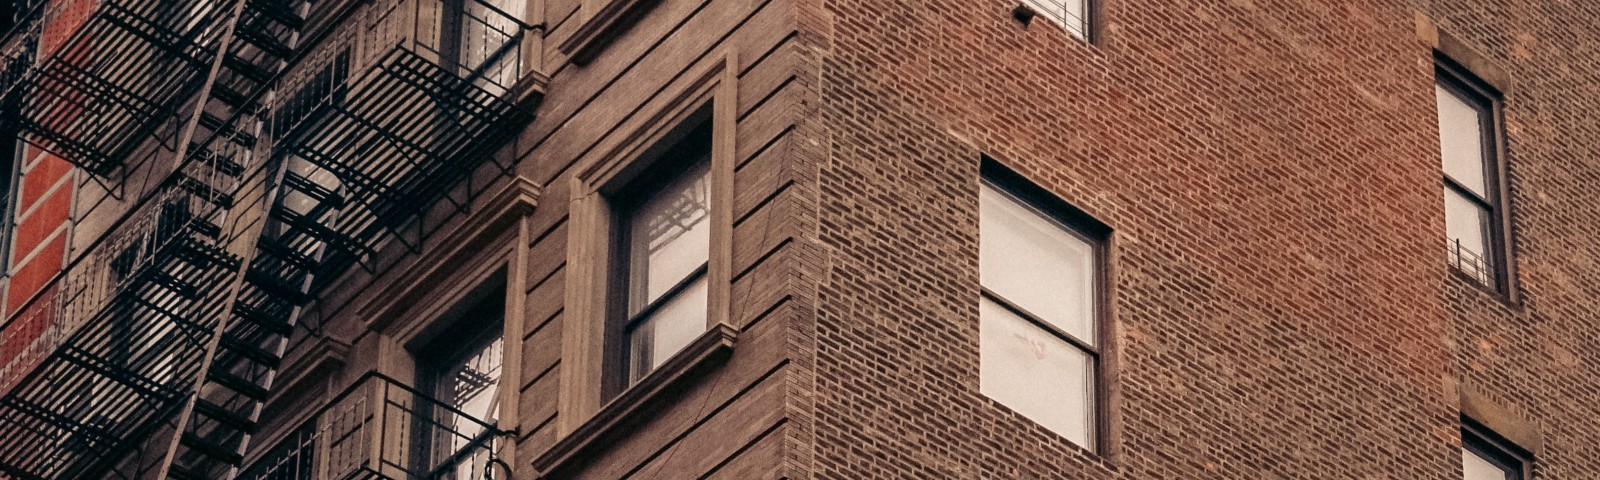 """Brick building with a sign that says """"How Are You, Really?"""""""